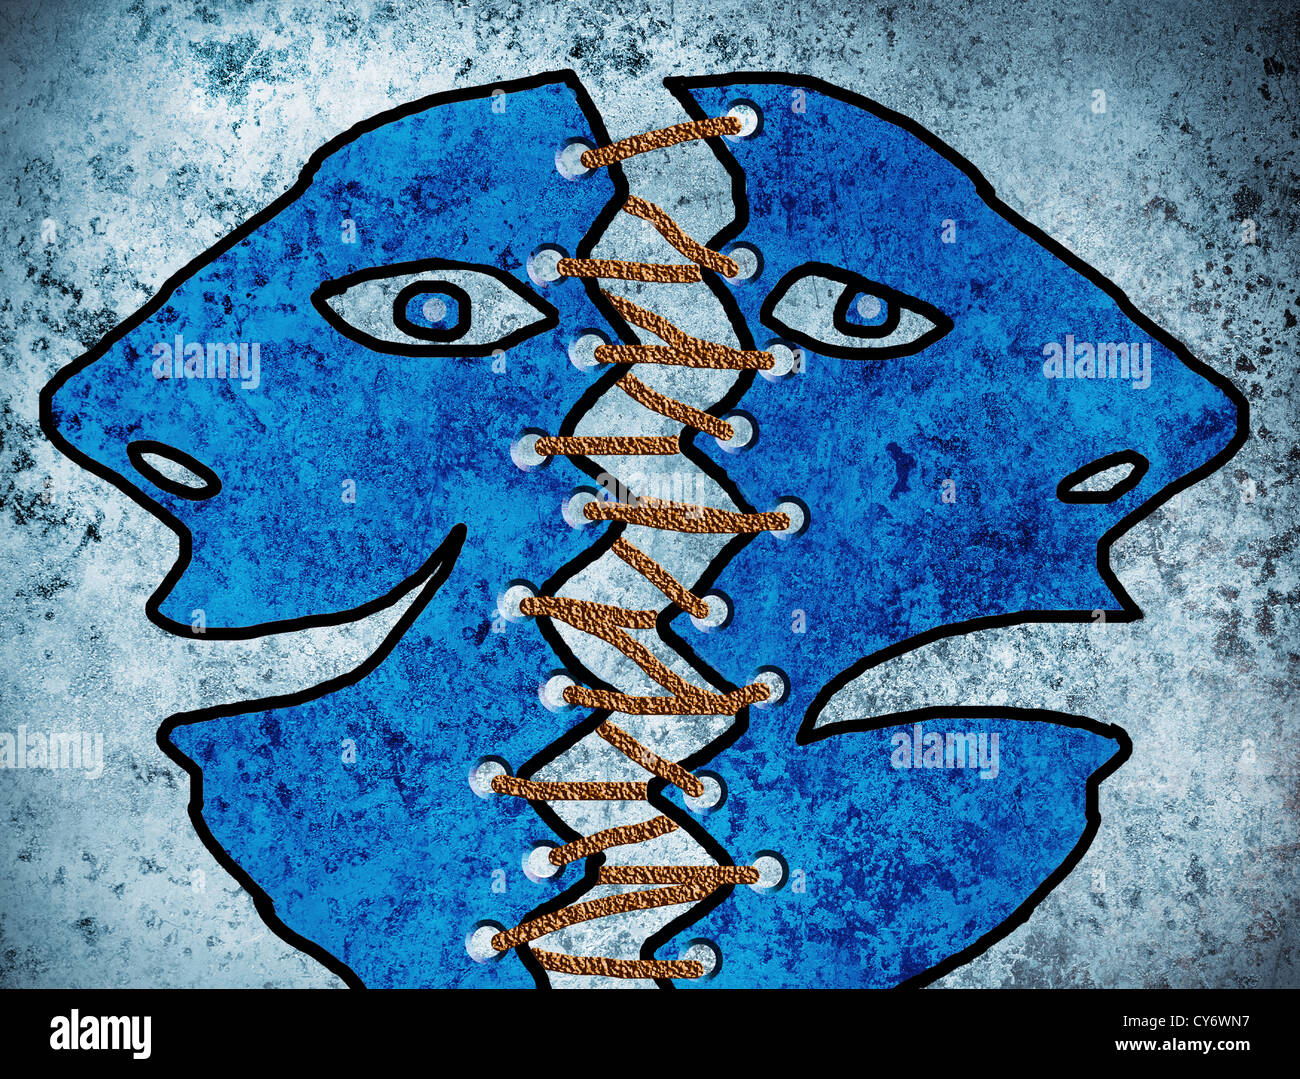 double personality blue illustration concept - Stock Image